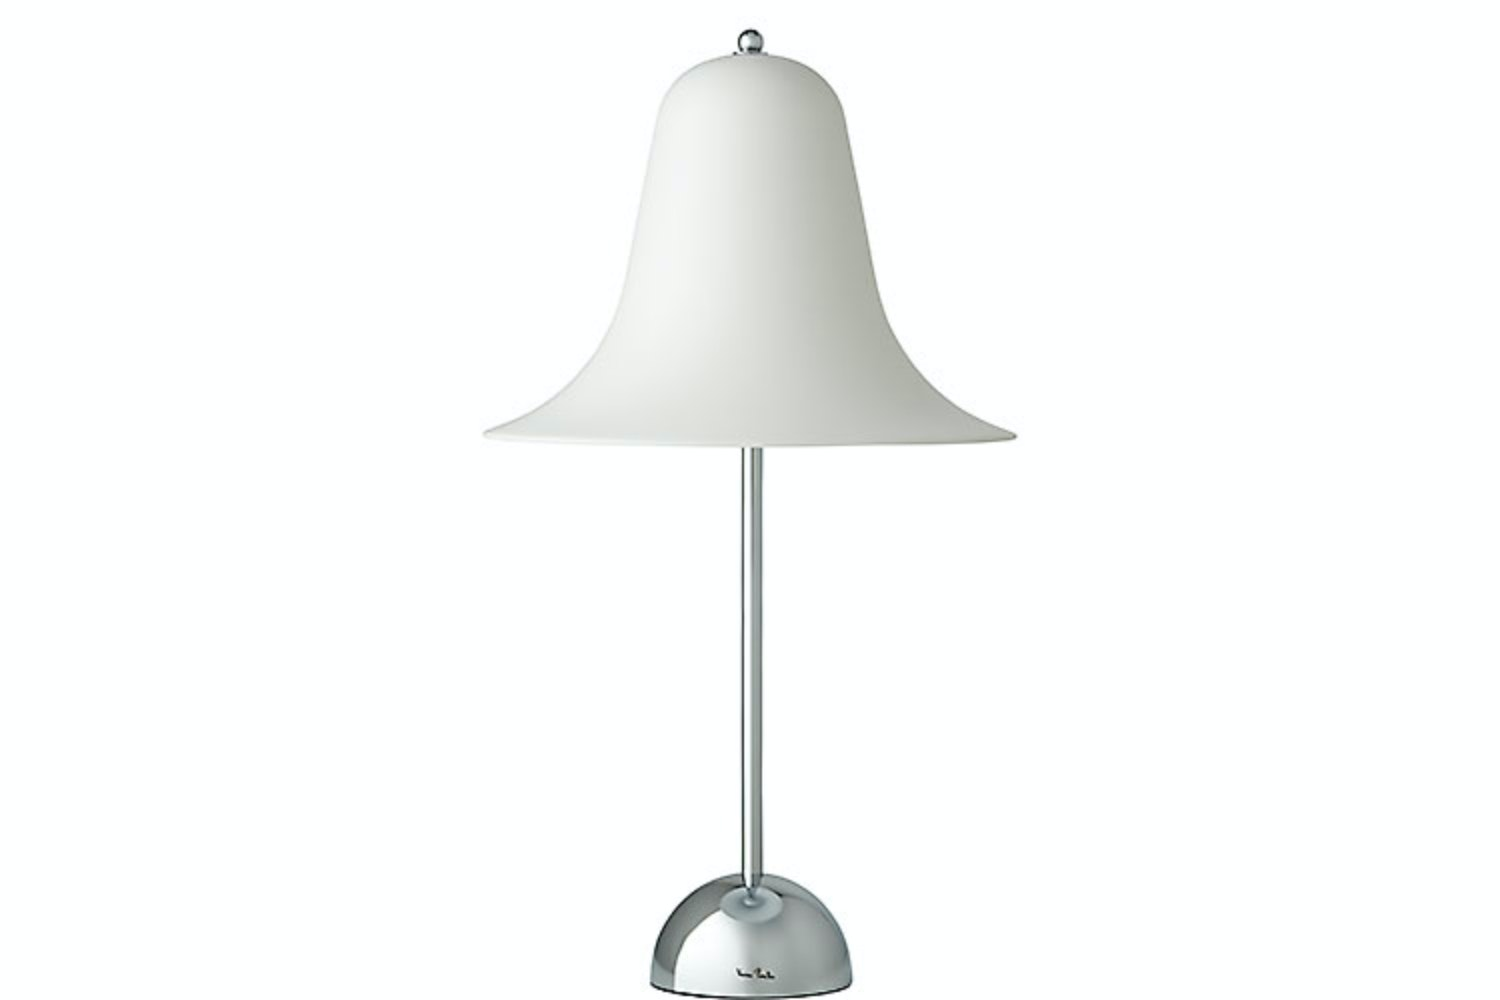 Pantop Table Lamp in White by Verner Panton for Verpan